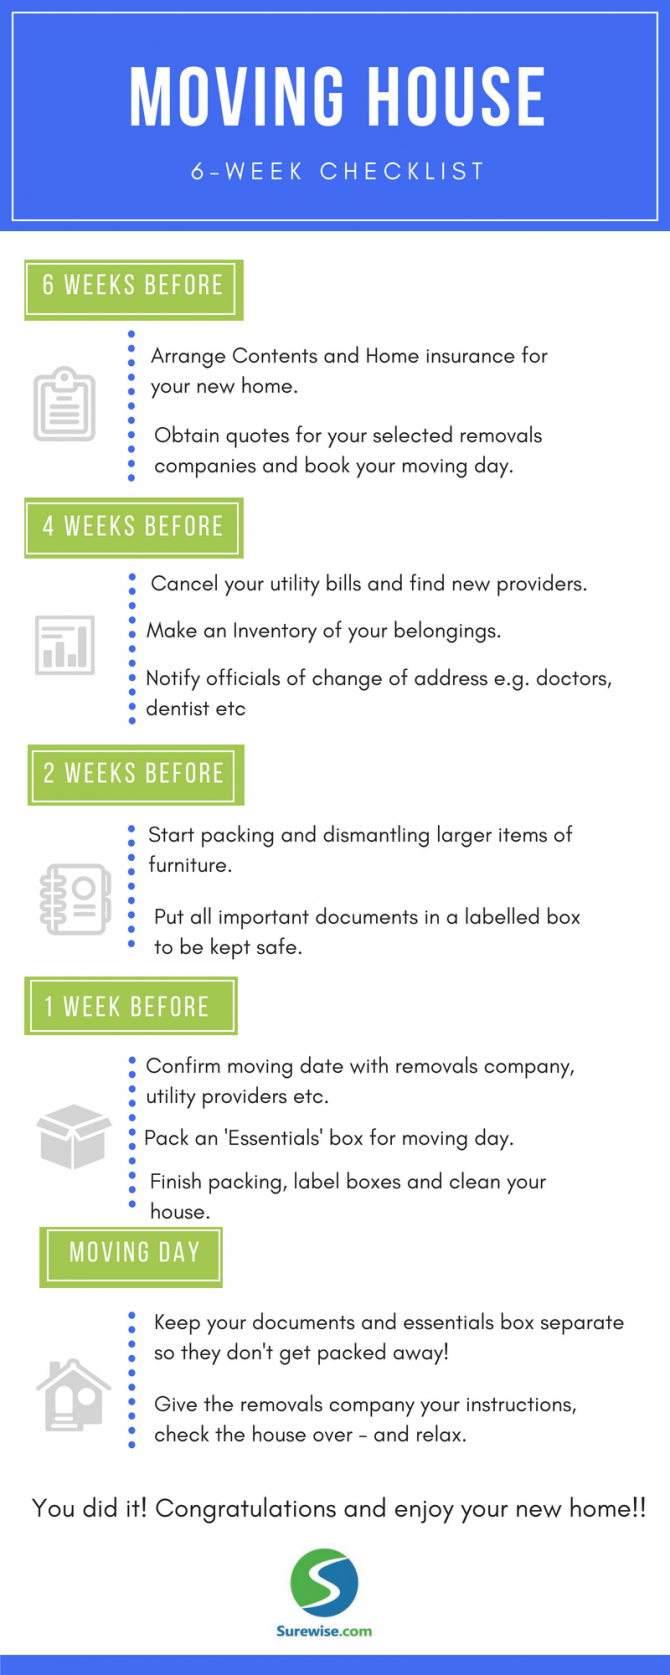 Moving House Spreadsheet Regarding Moving Housest South Australia Free Printable Nz Uksts  Perezzies